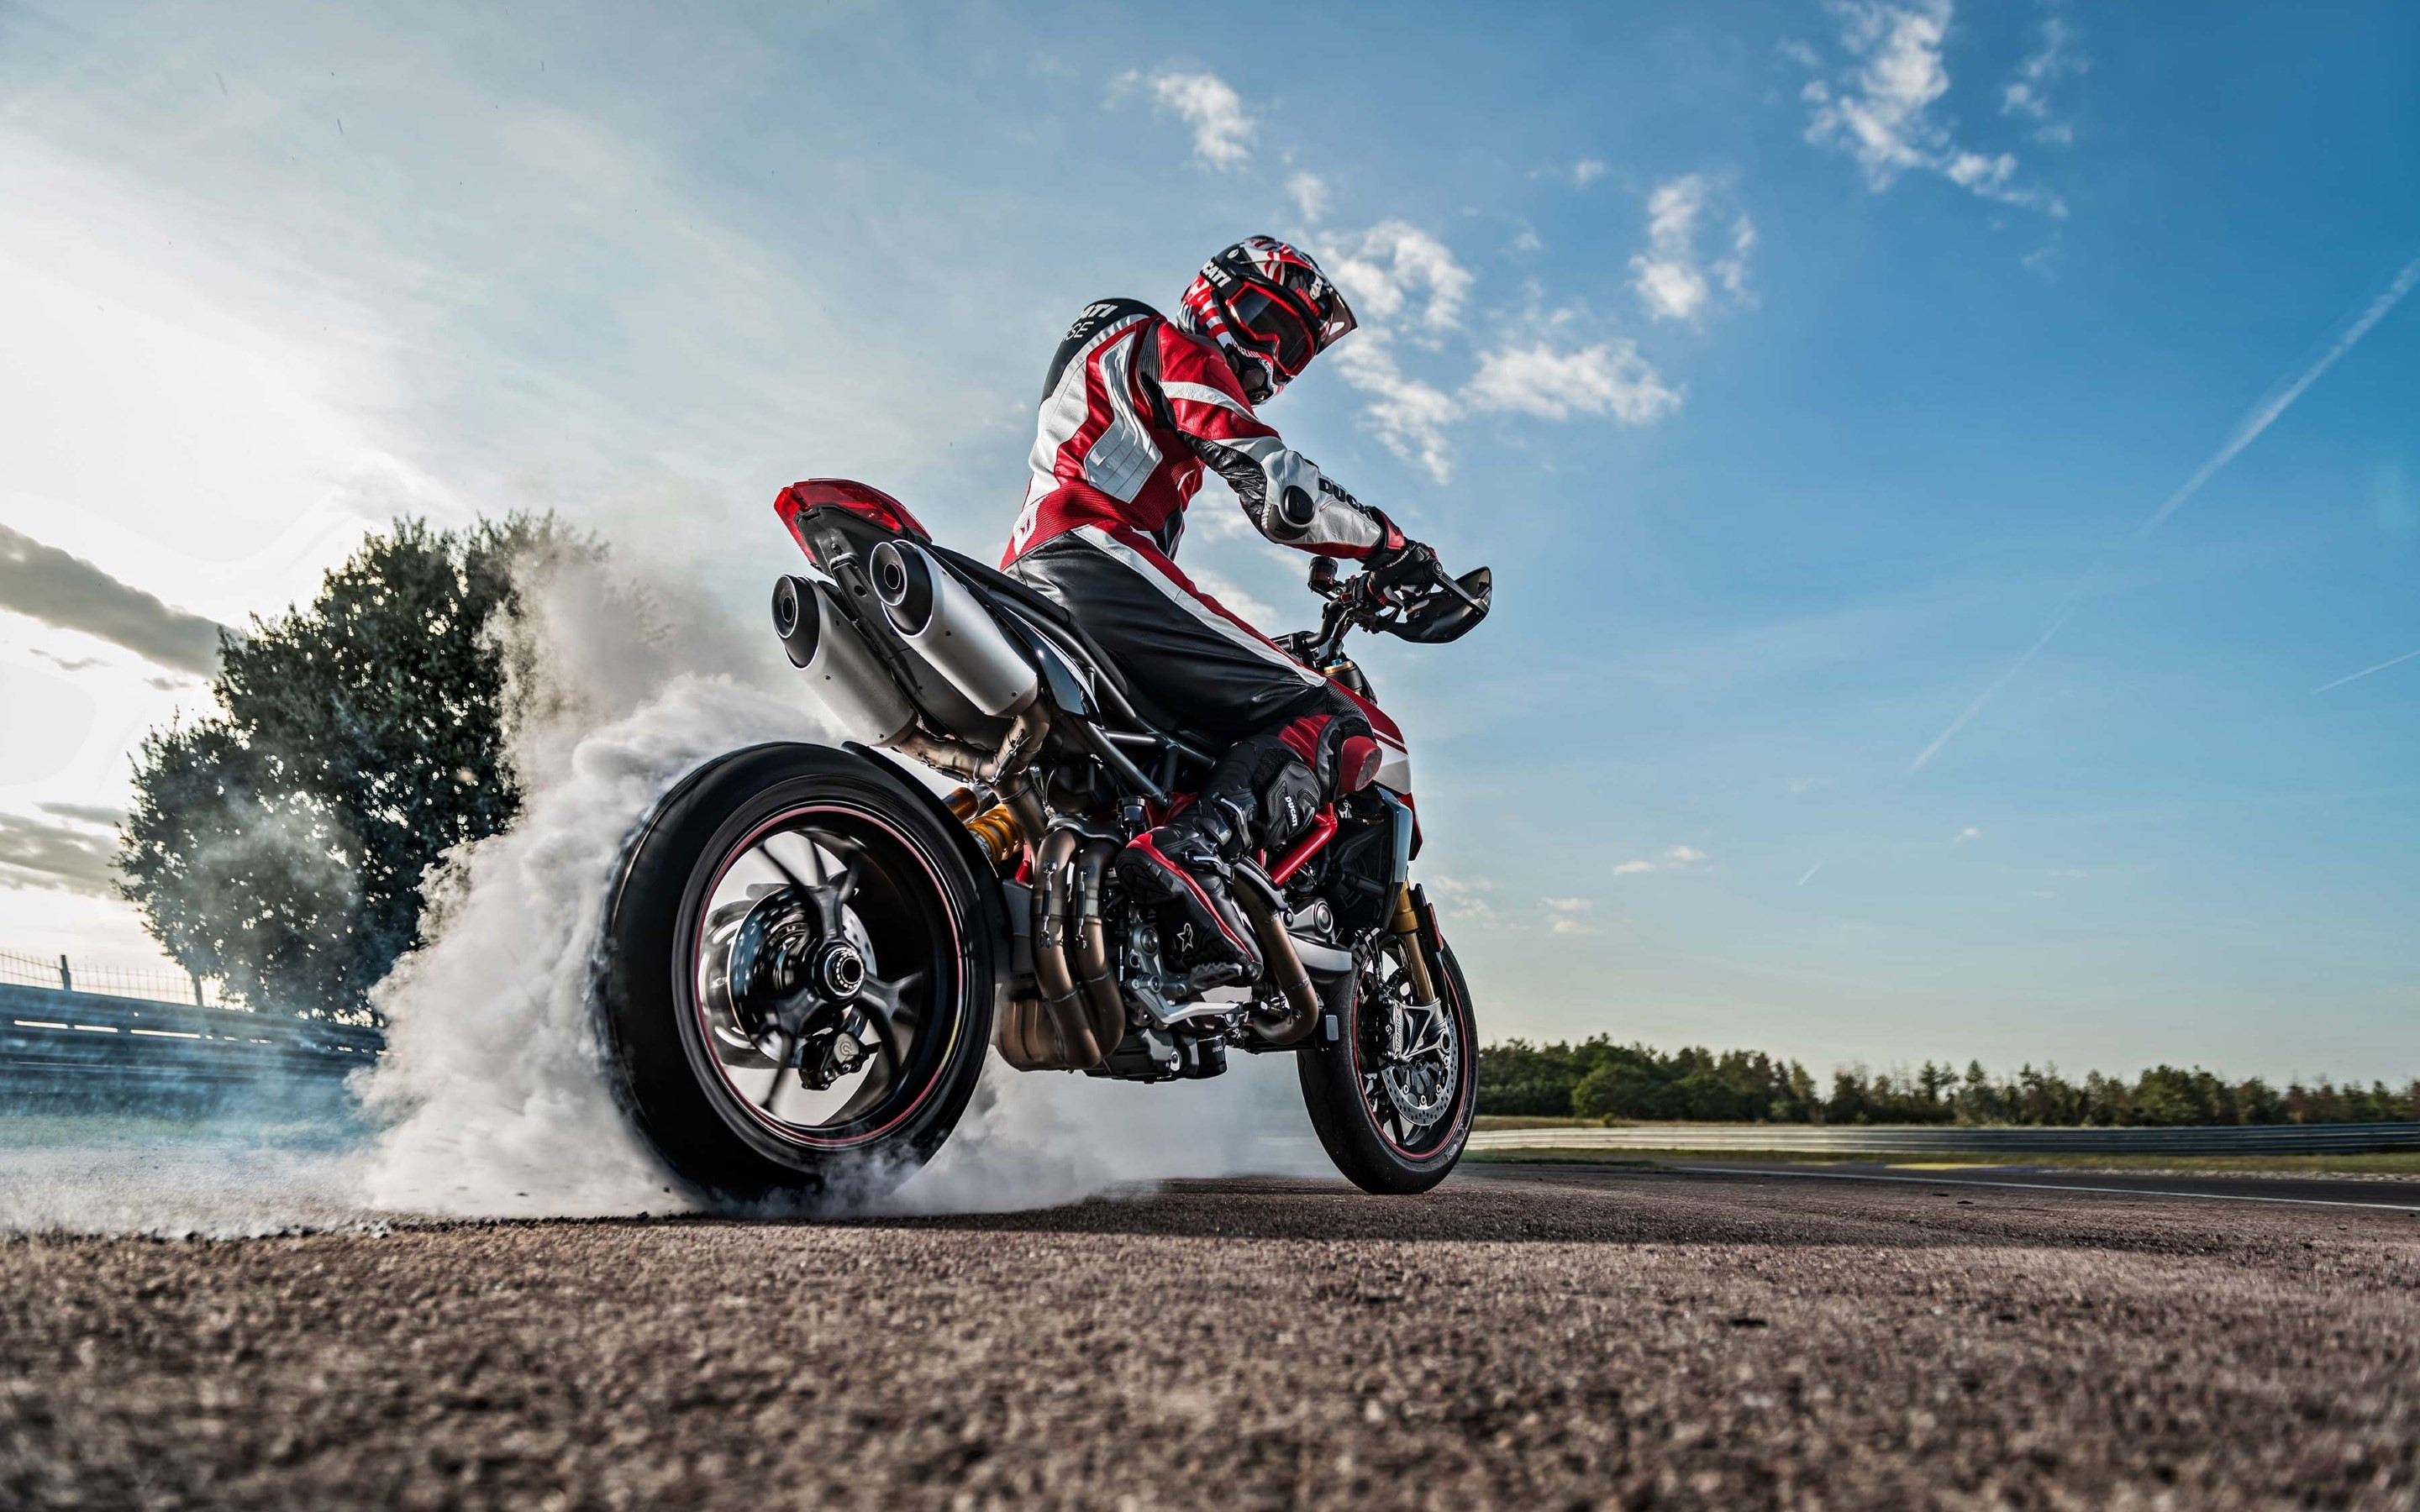 Ducati Hypermotard 950 wallpaper 2880x1800